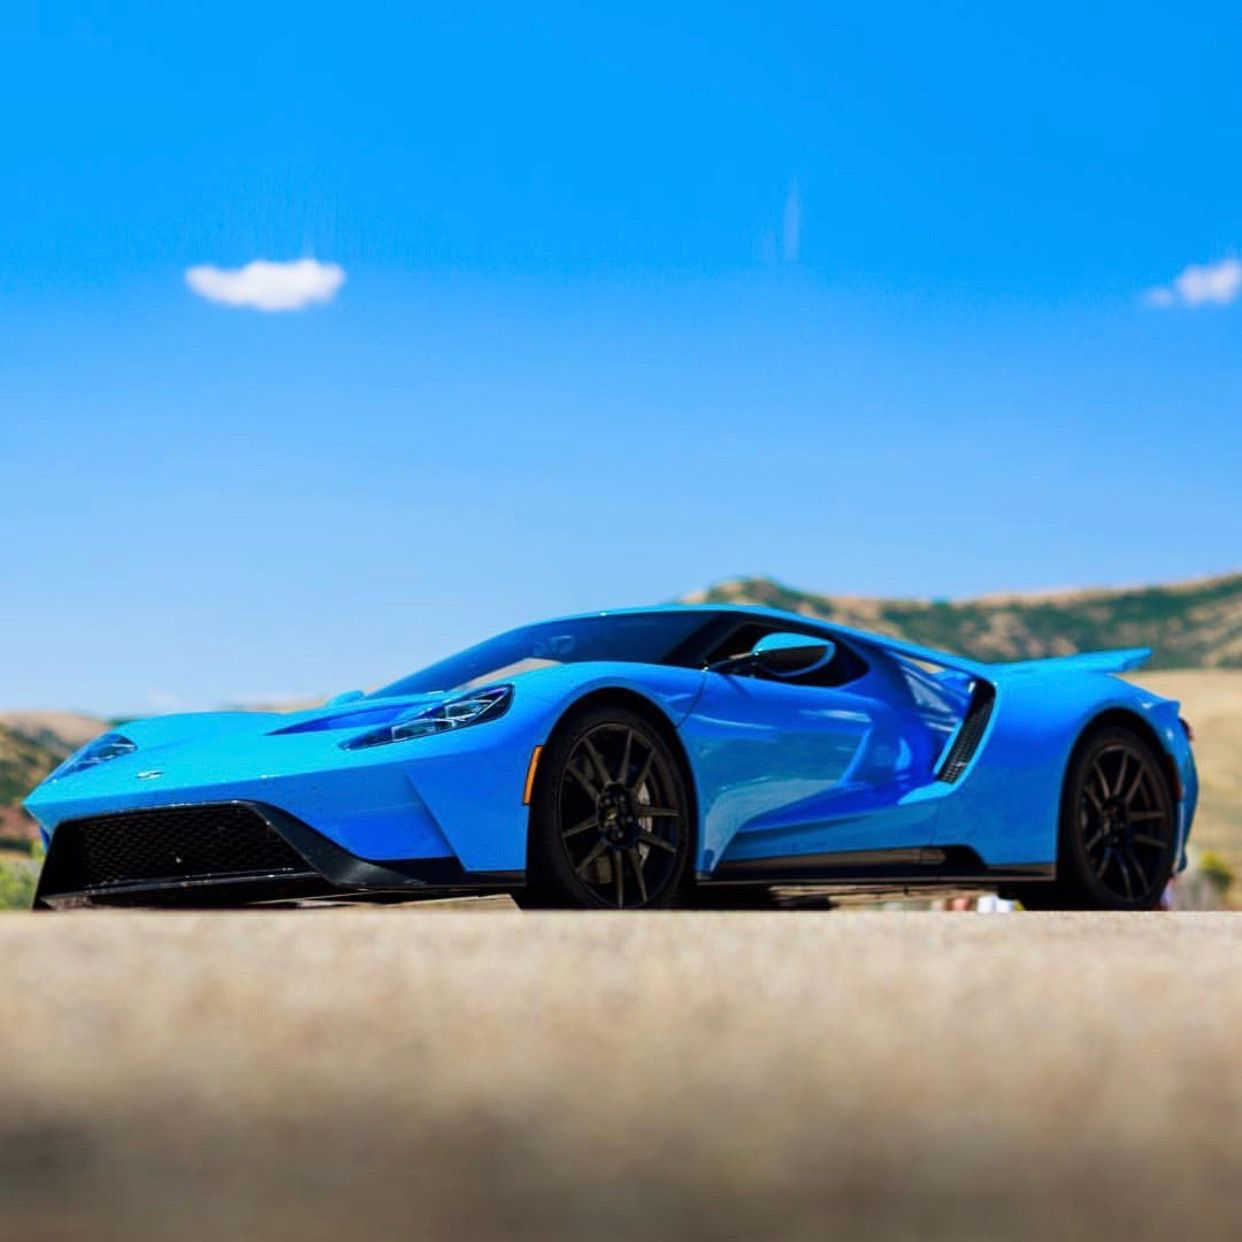 Ford Gt Painted In The Porsche Color Riviera Blue Photo Taken By